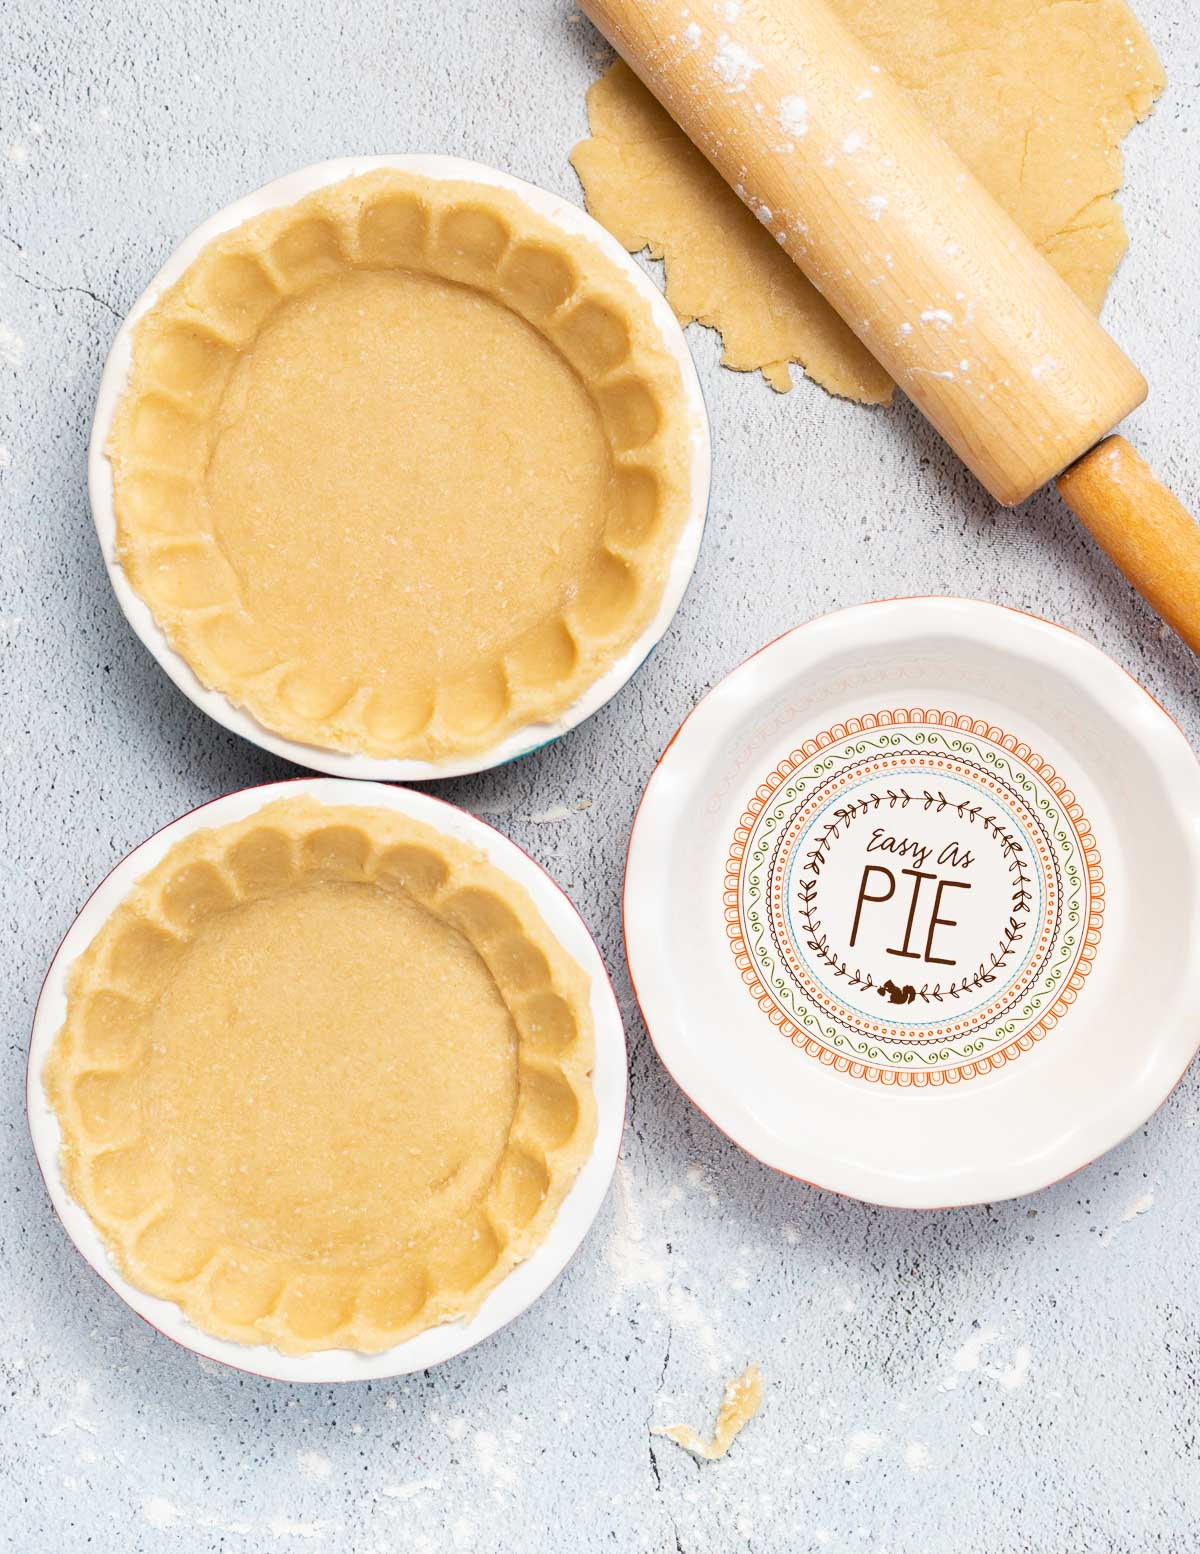 2 pie crusts and an empty pie dish